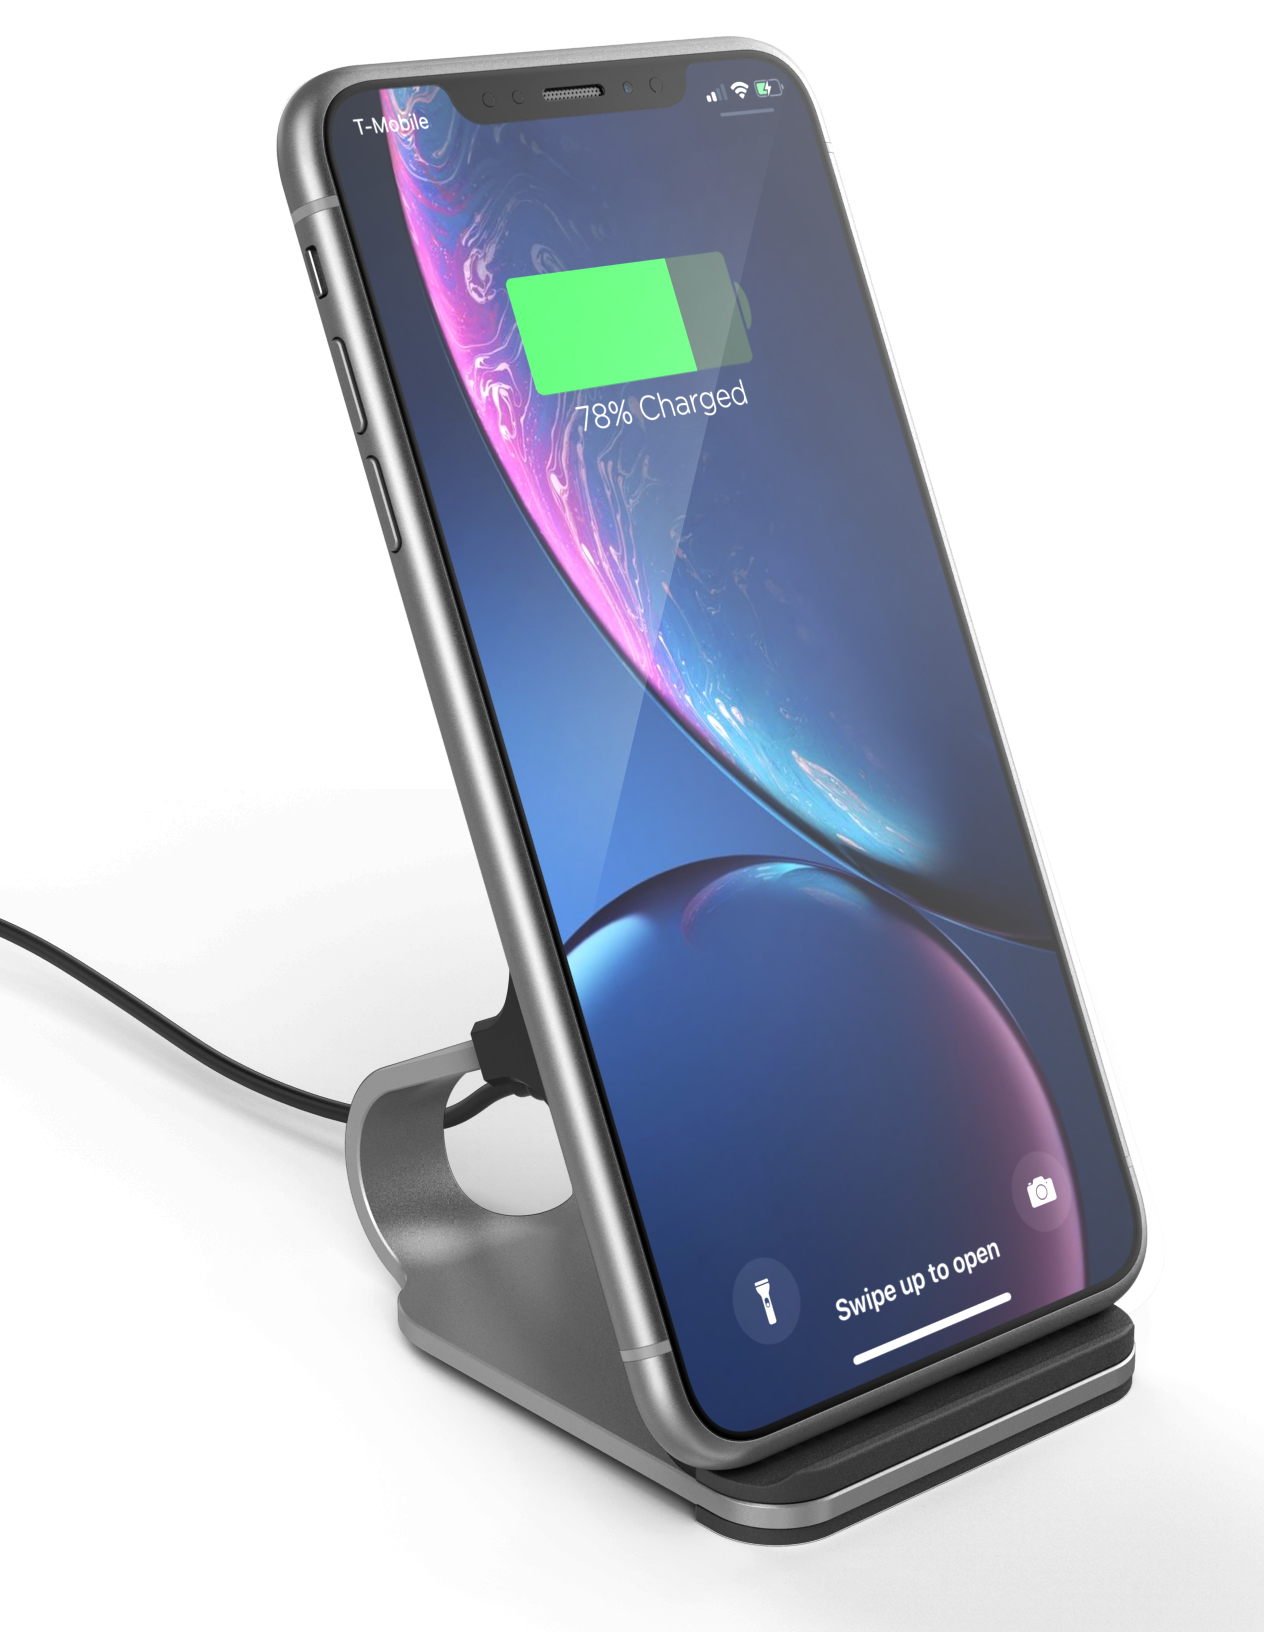 Iphone Cordless Charger Encased Wireless Charging Stand For Iphone Xr Wireless Charger 2018 Qi Compatible Desktop Phone Power Station Silver